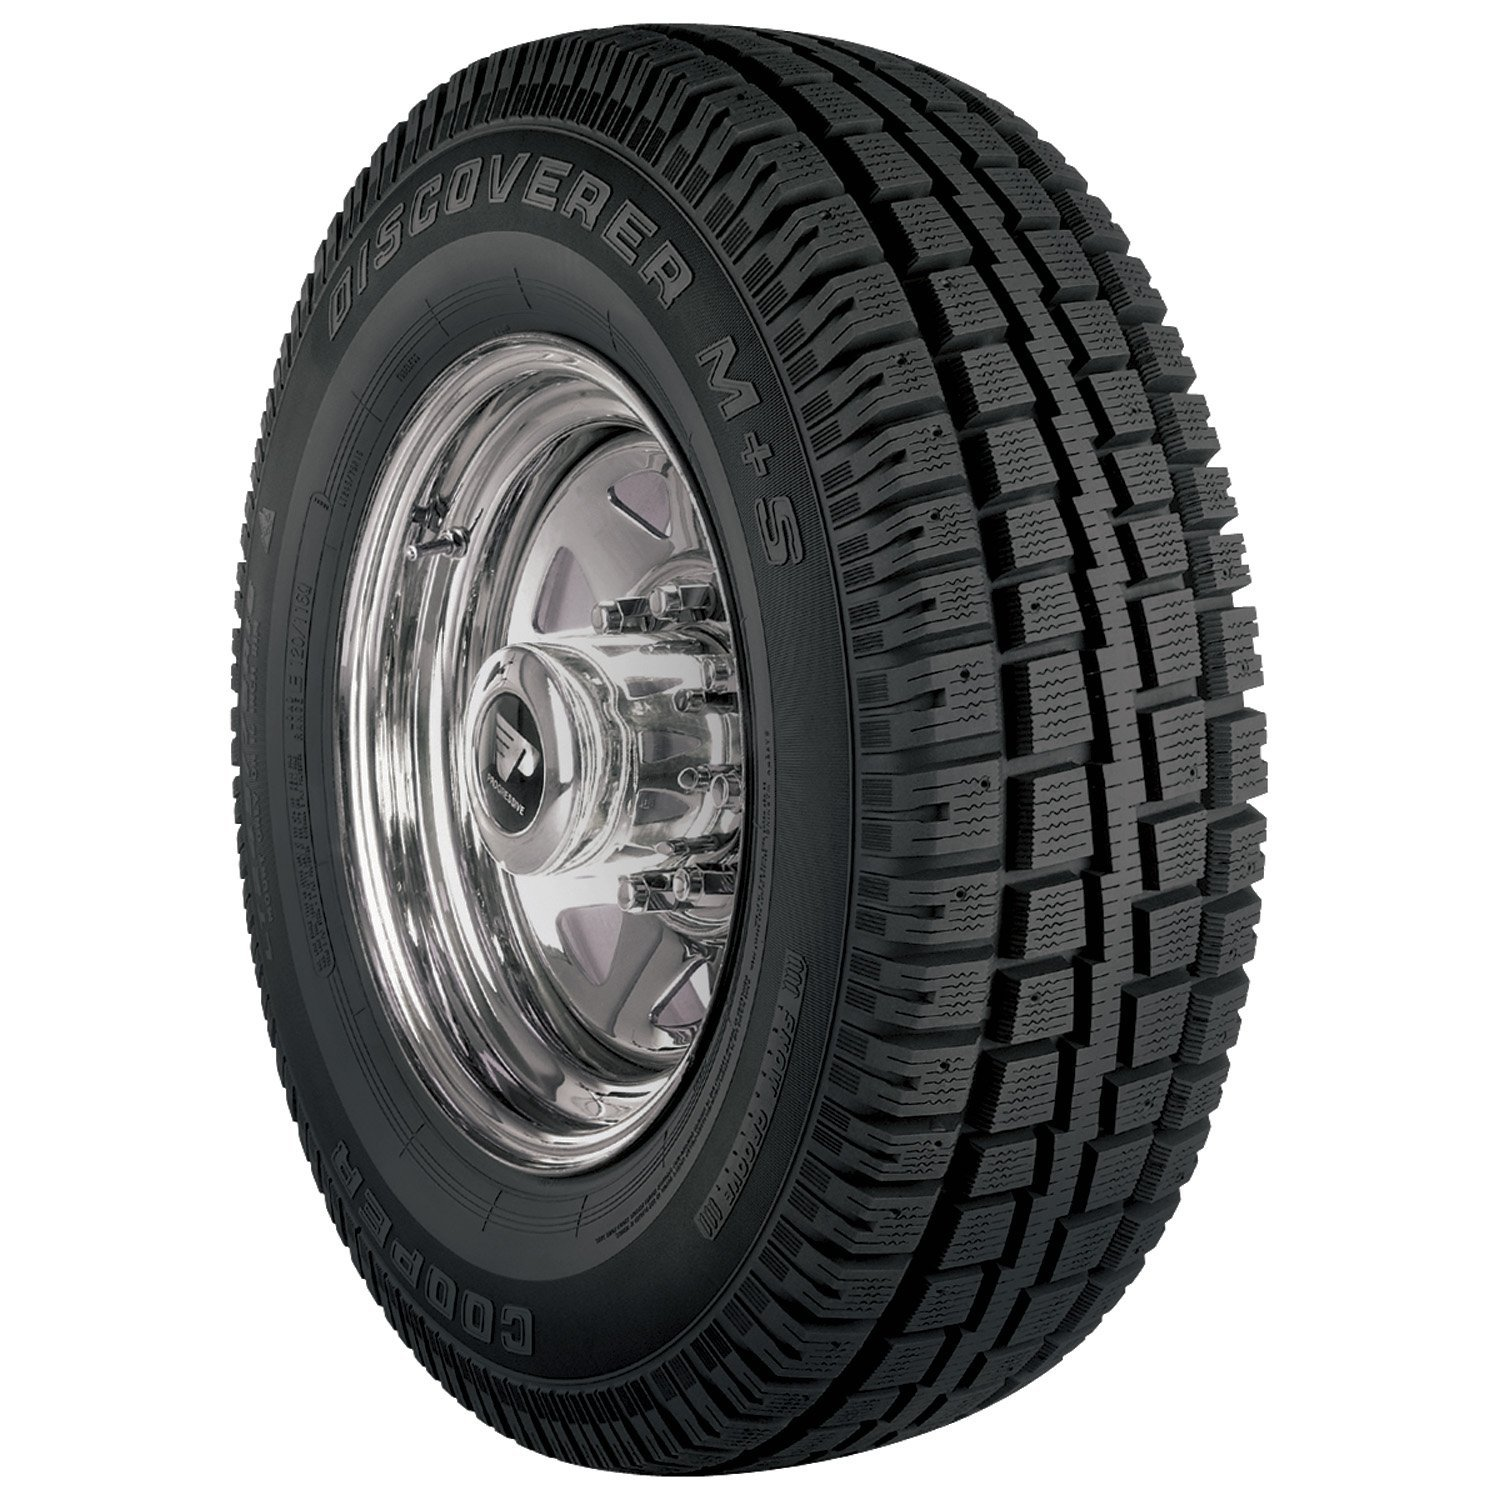 Gomme 4x4 Suv Cooper Tyres 255/50 R19 107V DISCOVERER WINTER XL Invernale